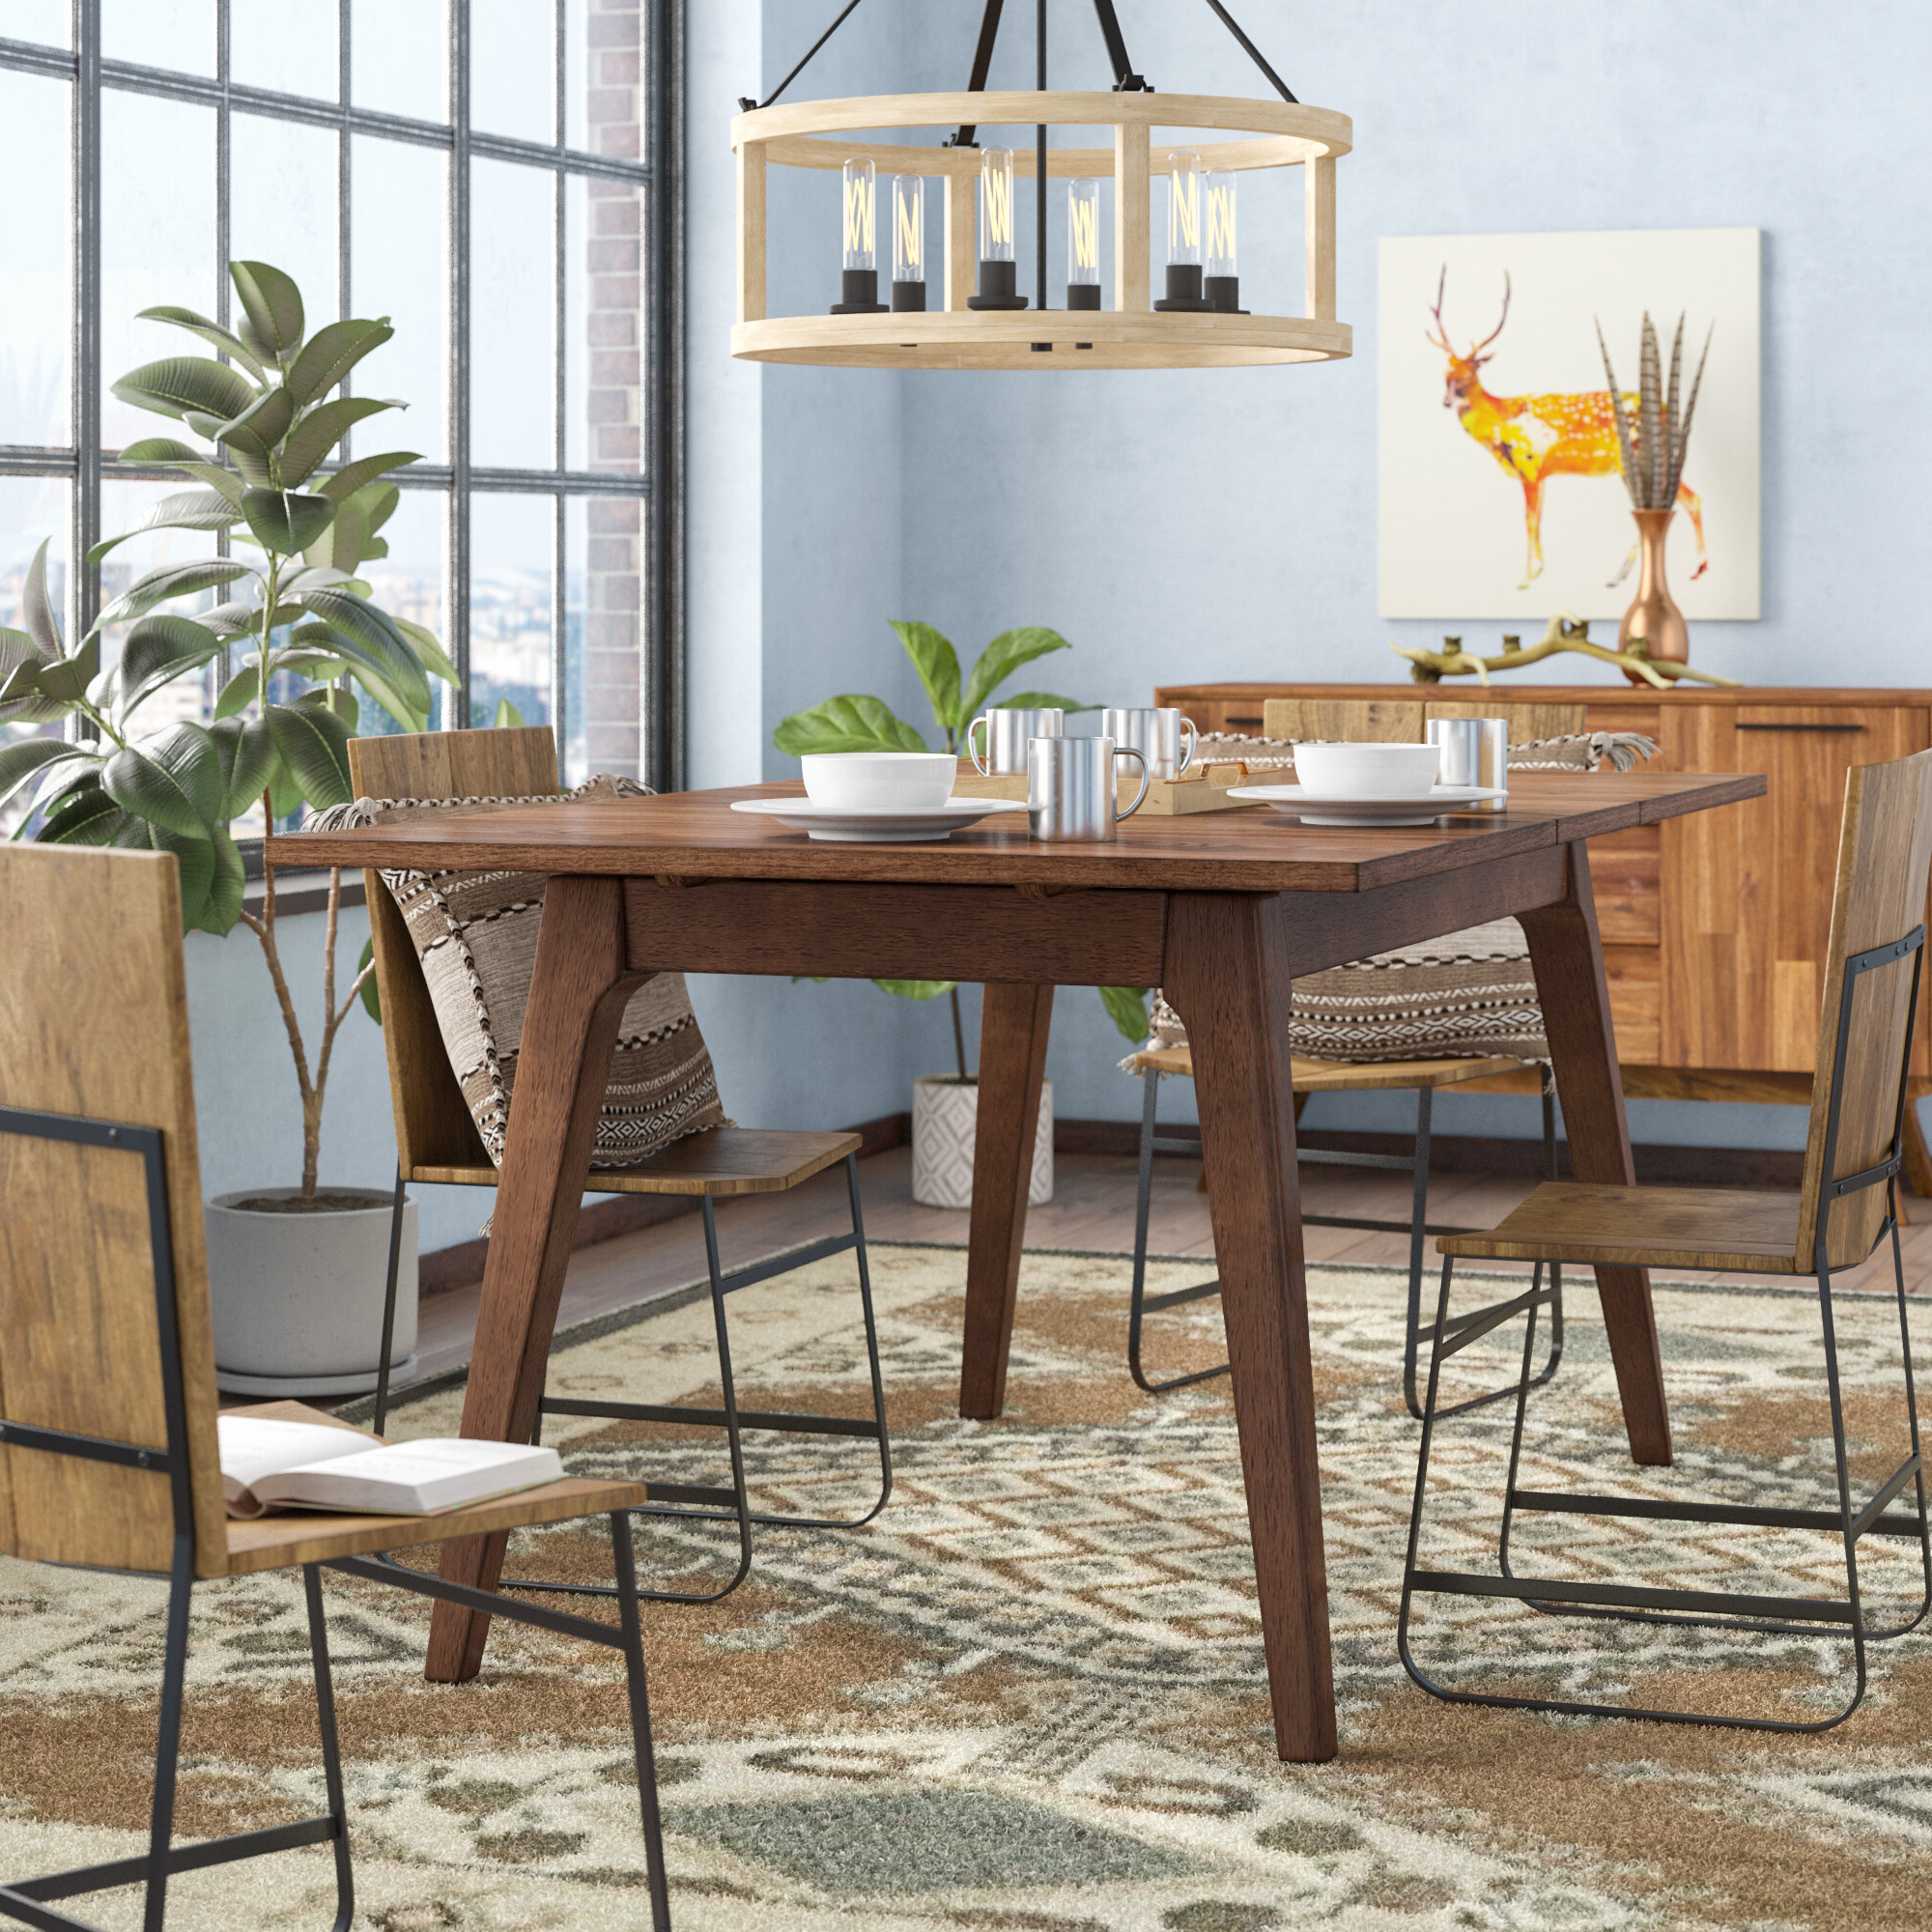 Preferred Transitional 4 Seating Double Drop Leaf Casual Dining Tables Regarding Union Rustic Lehto Drop Leaf Dining Table & Reviews (View 10 of 30)